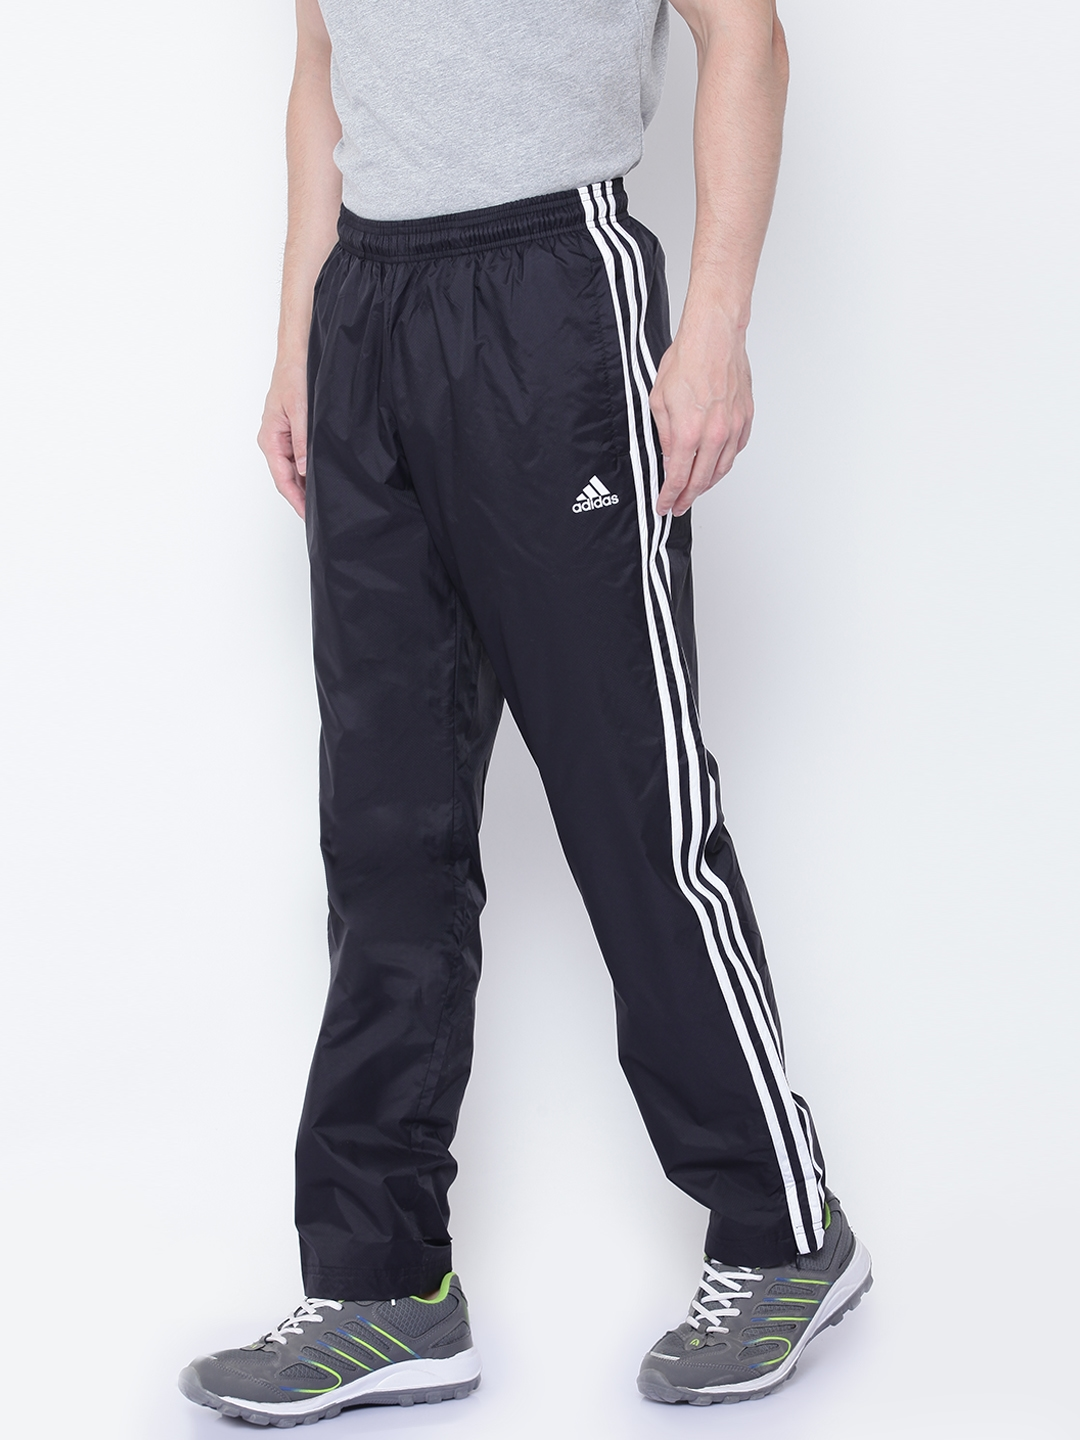 5107a9eb5073 Buy ADIDAS Men Black Essentials 3 Stripes Woven Track Pants - Track ...